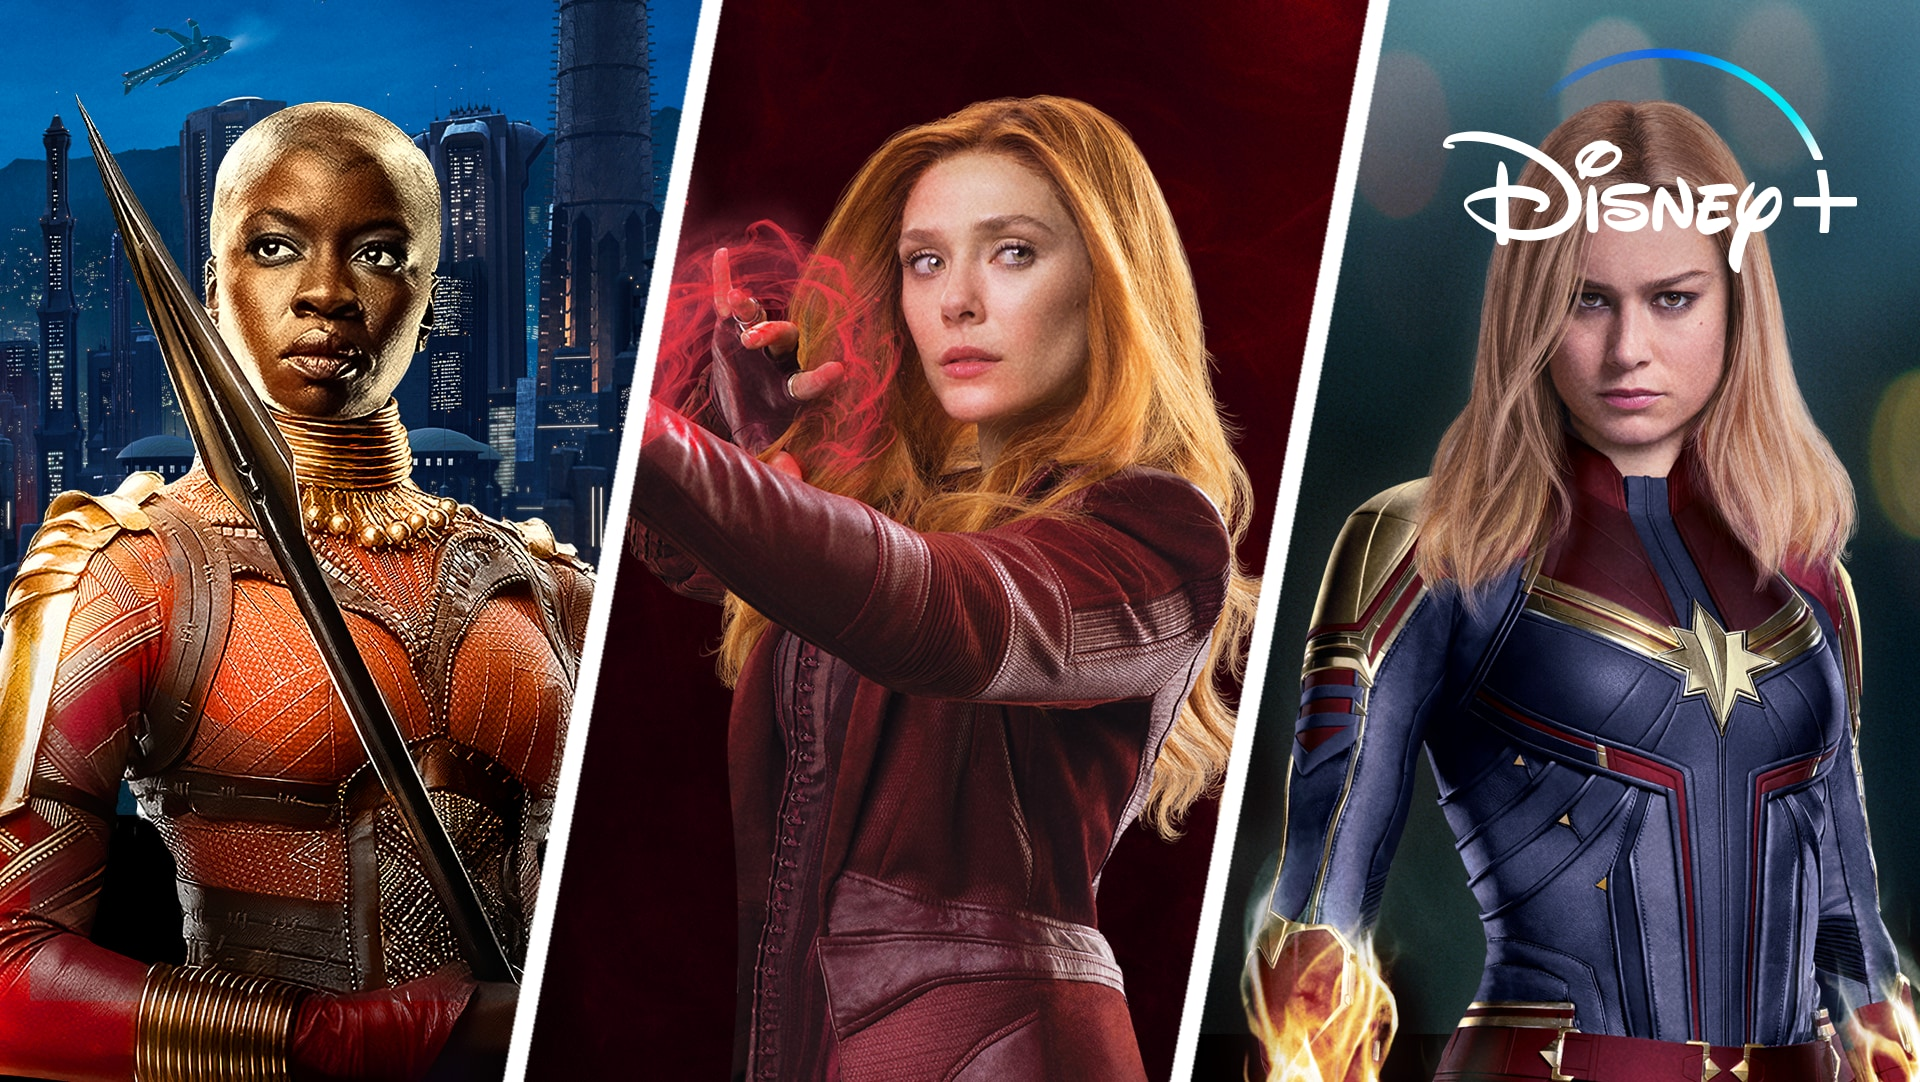 The Heroes of Marvel | Disney+